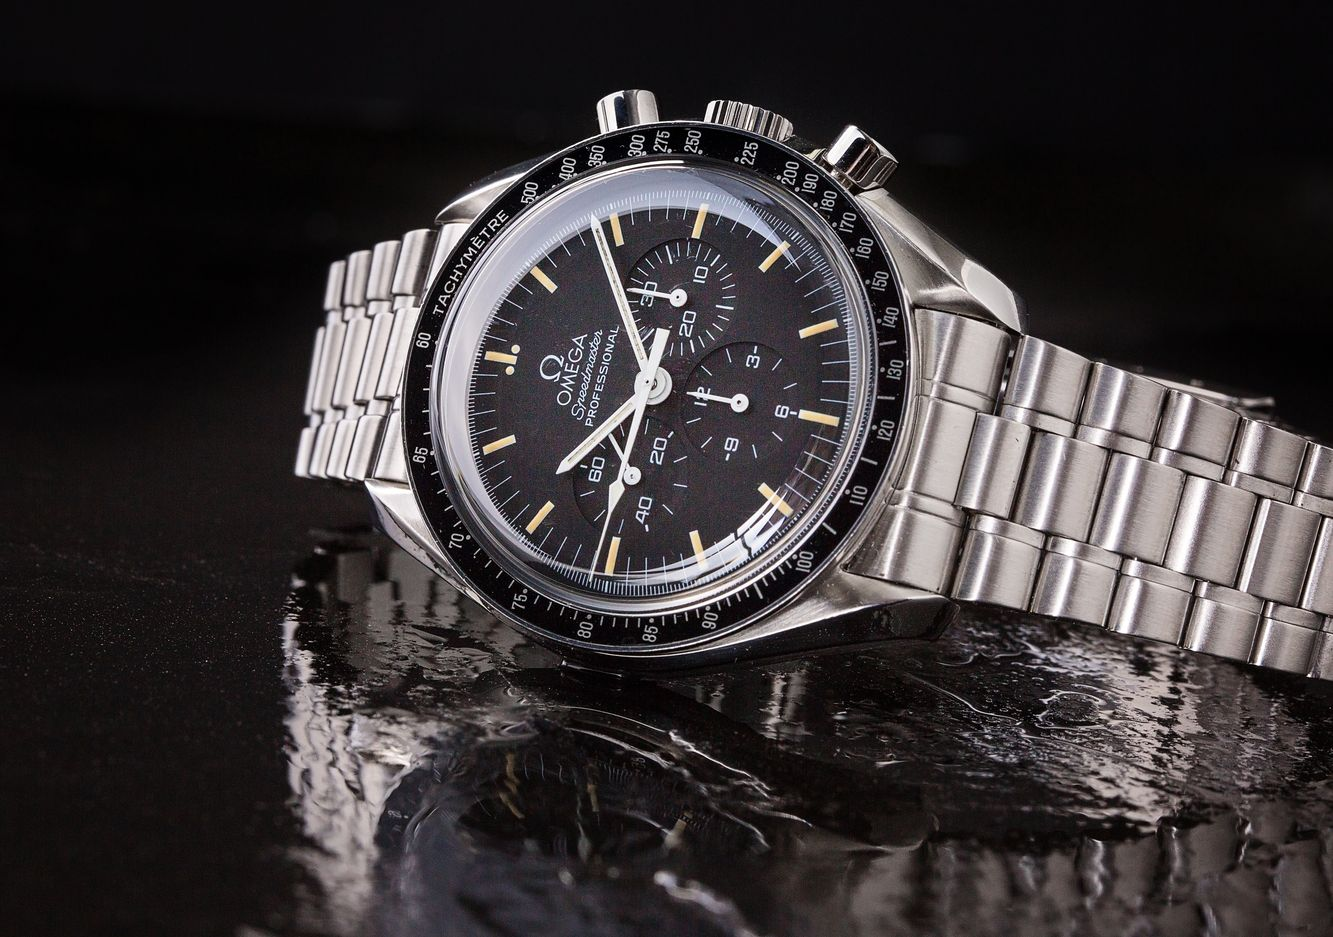 Omega Speedmaster Professional Moonwatch Cal 1861 vs Cal 1863 Comparison Guide